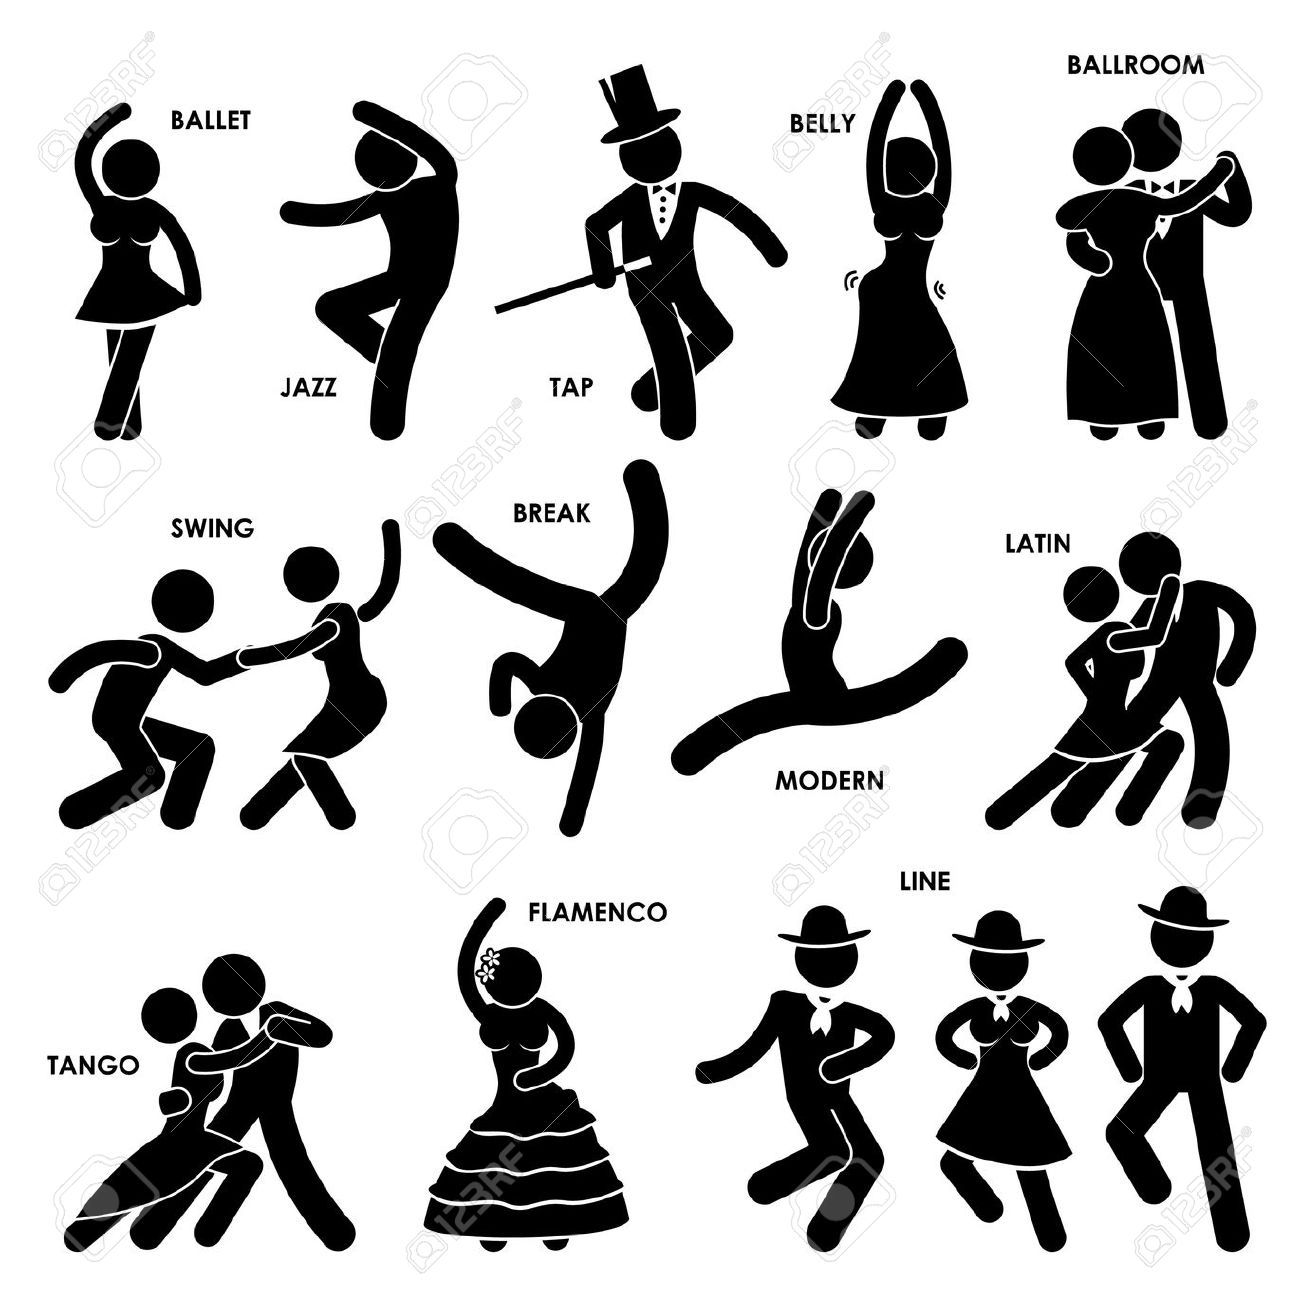 small resolution of dance stock vector illustration and royalty free dance clipart